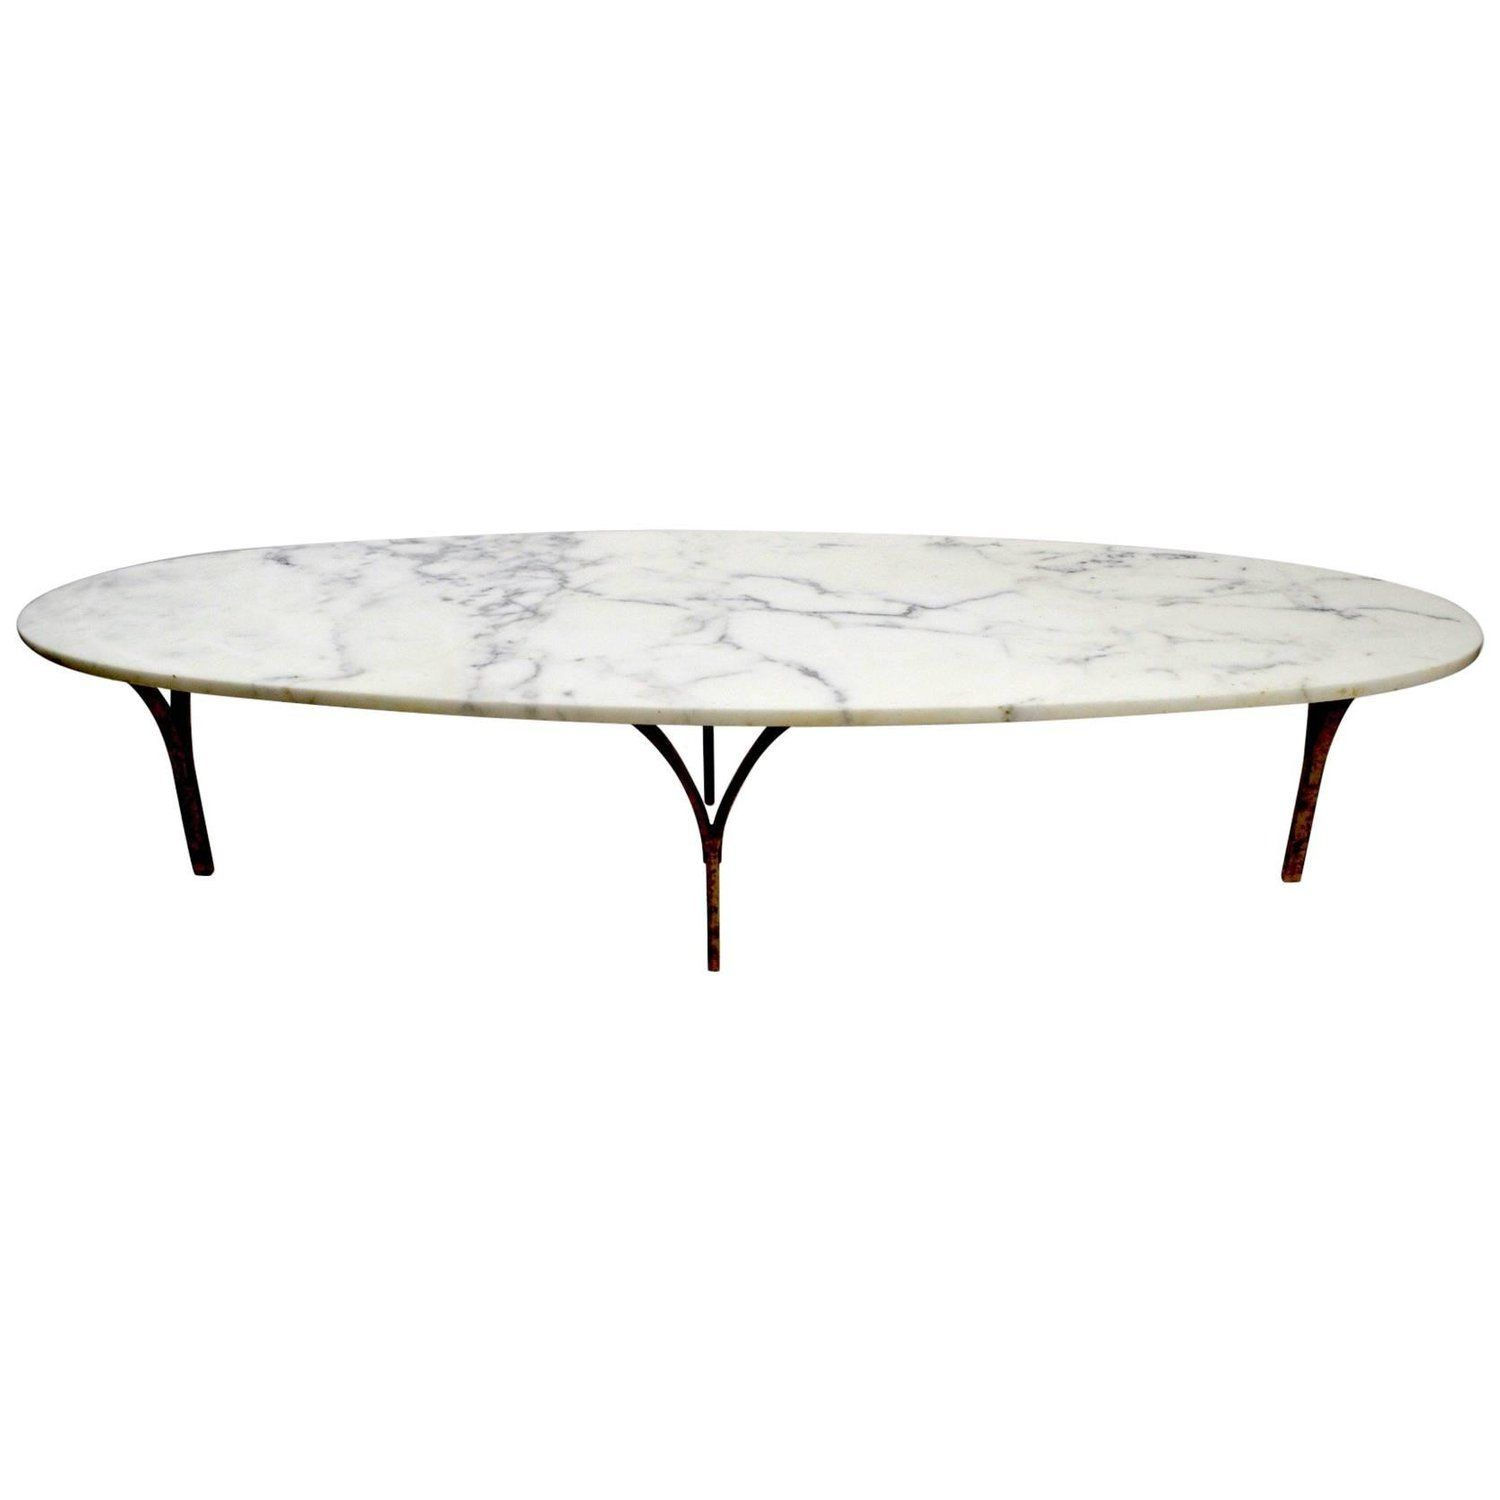 Oval Marble Top Coffee Table with Brass Legs